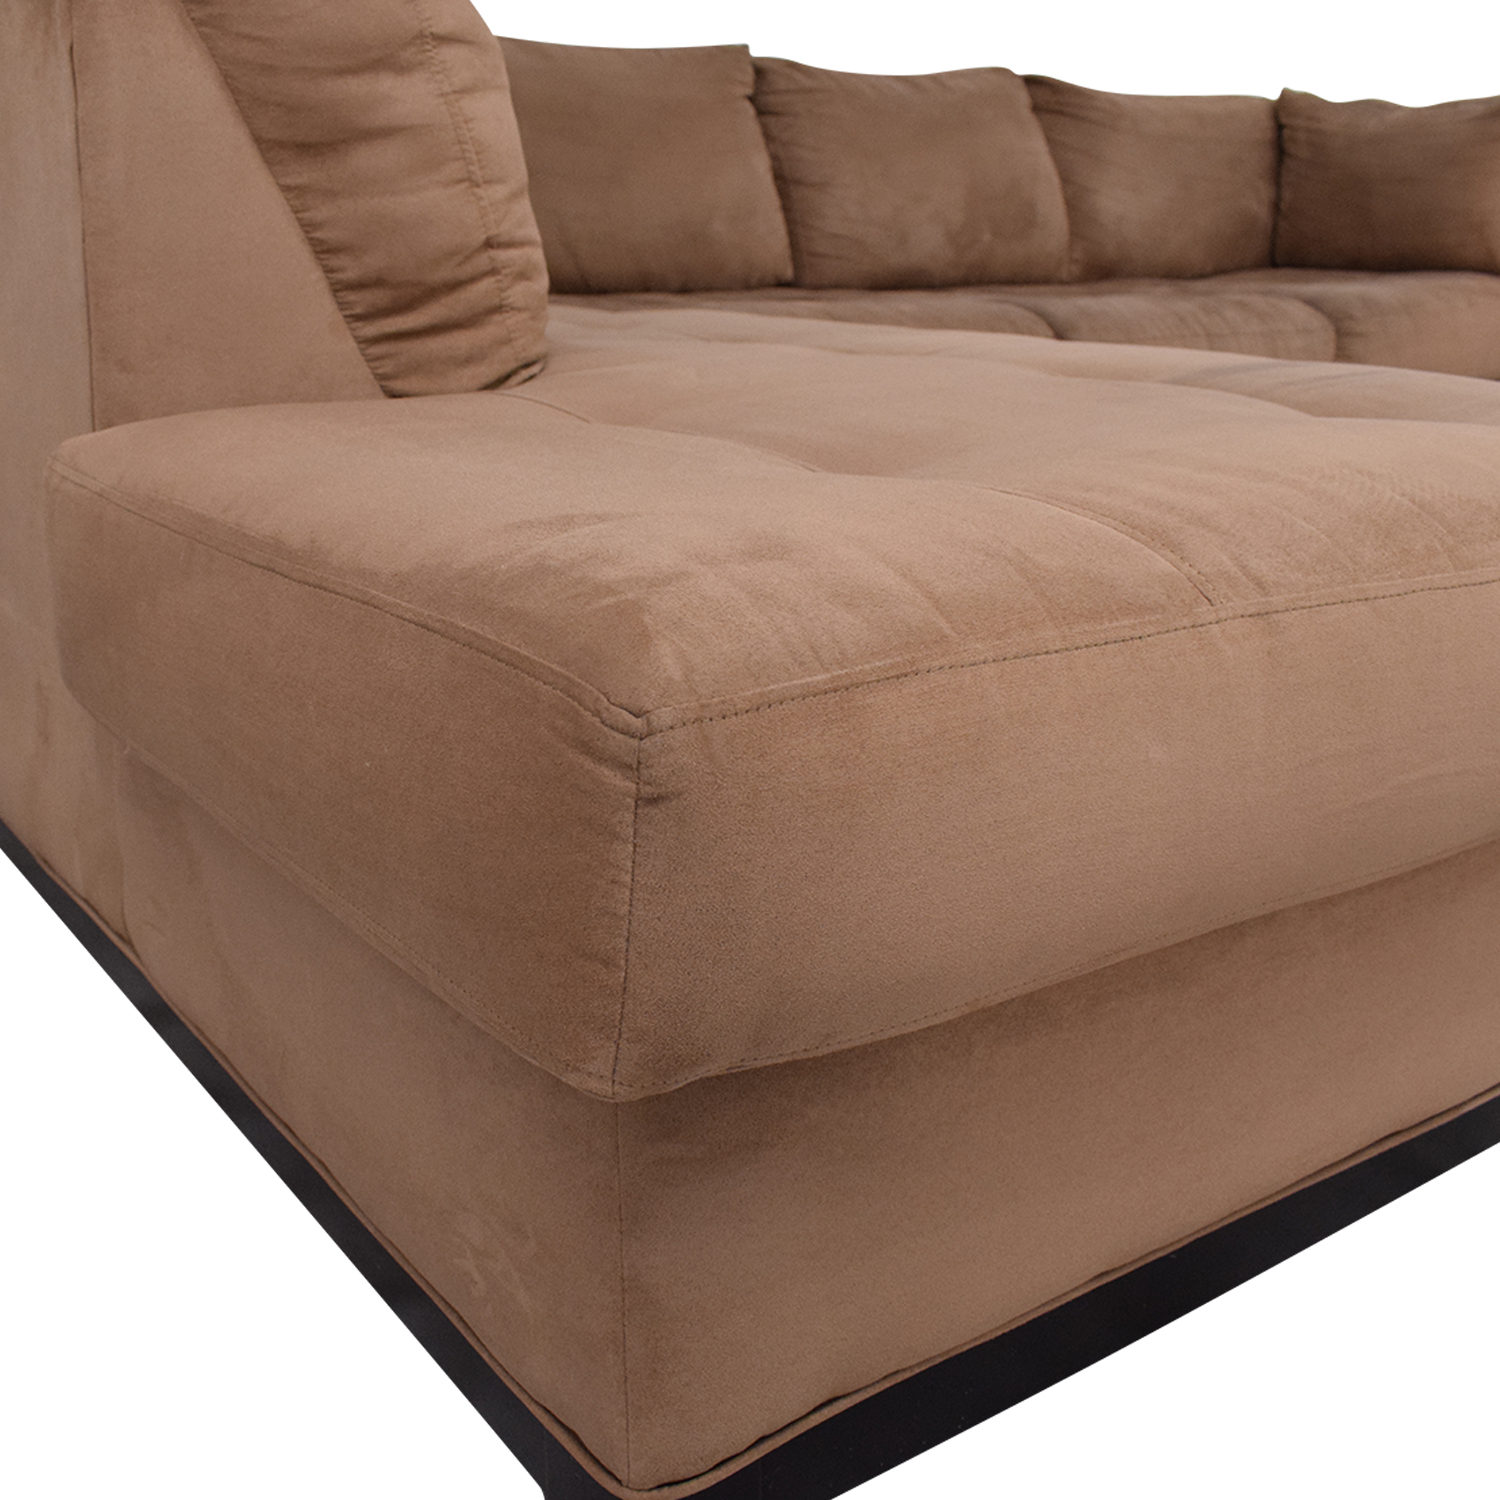 Raymour & Flanigan Raymour & Flanigan Two Piece Chaise Sectional Sofa on sale